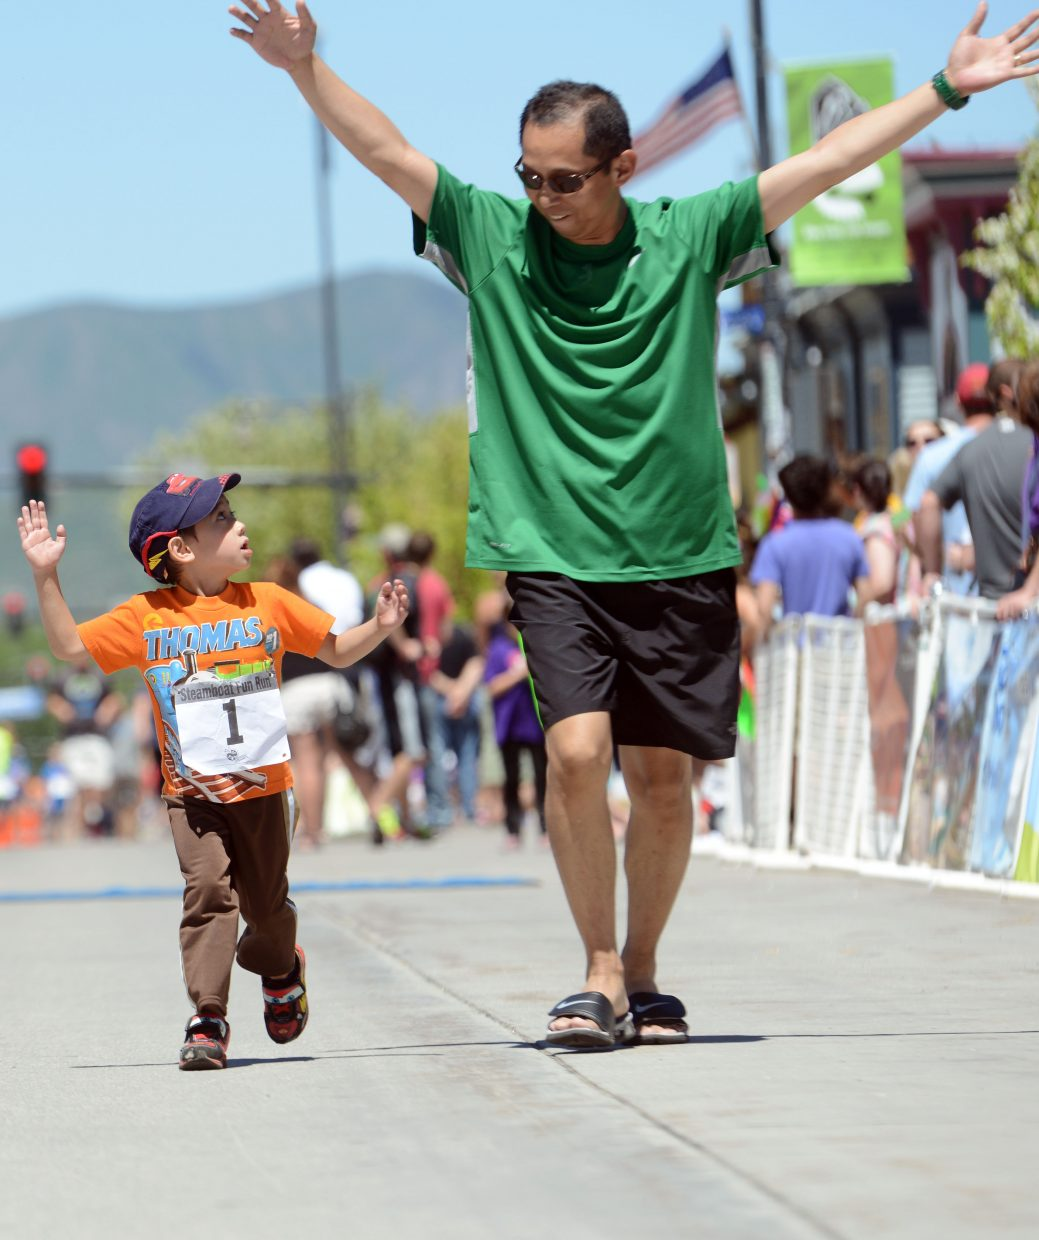 Ritchie Hernandez gives his son, Nevaeh, 5, a tip on the correct way to cross the finish line during the children's Fun Run at the Steamboat Marathon. Hernandez had the scoop thanks to his finishing the half-marathon earlier in the day.